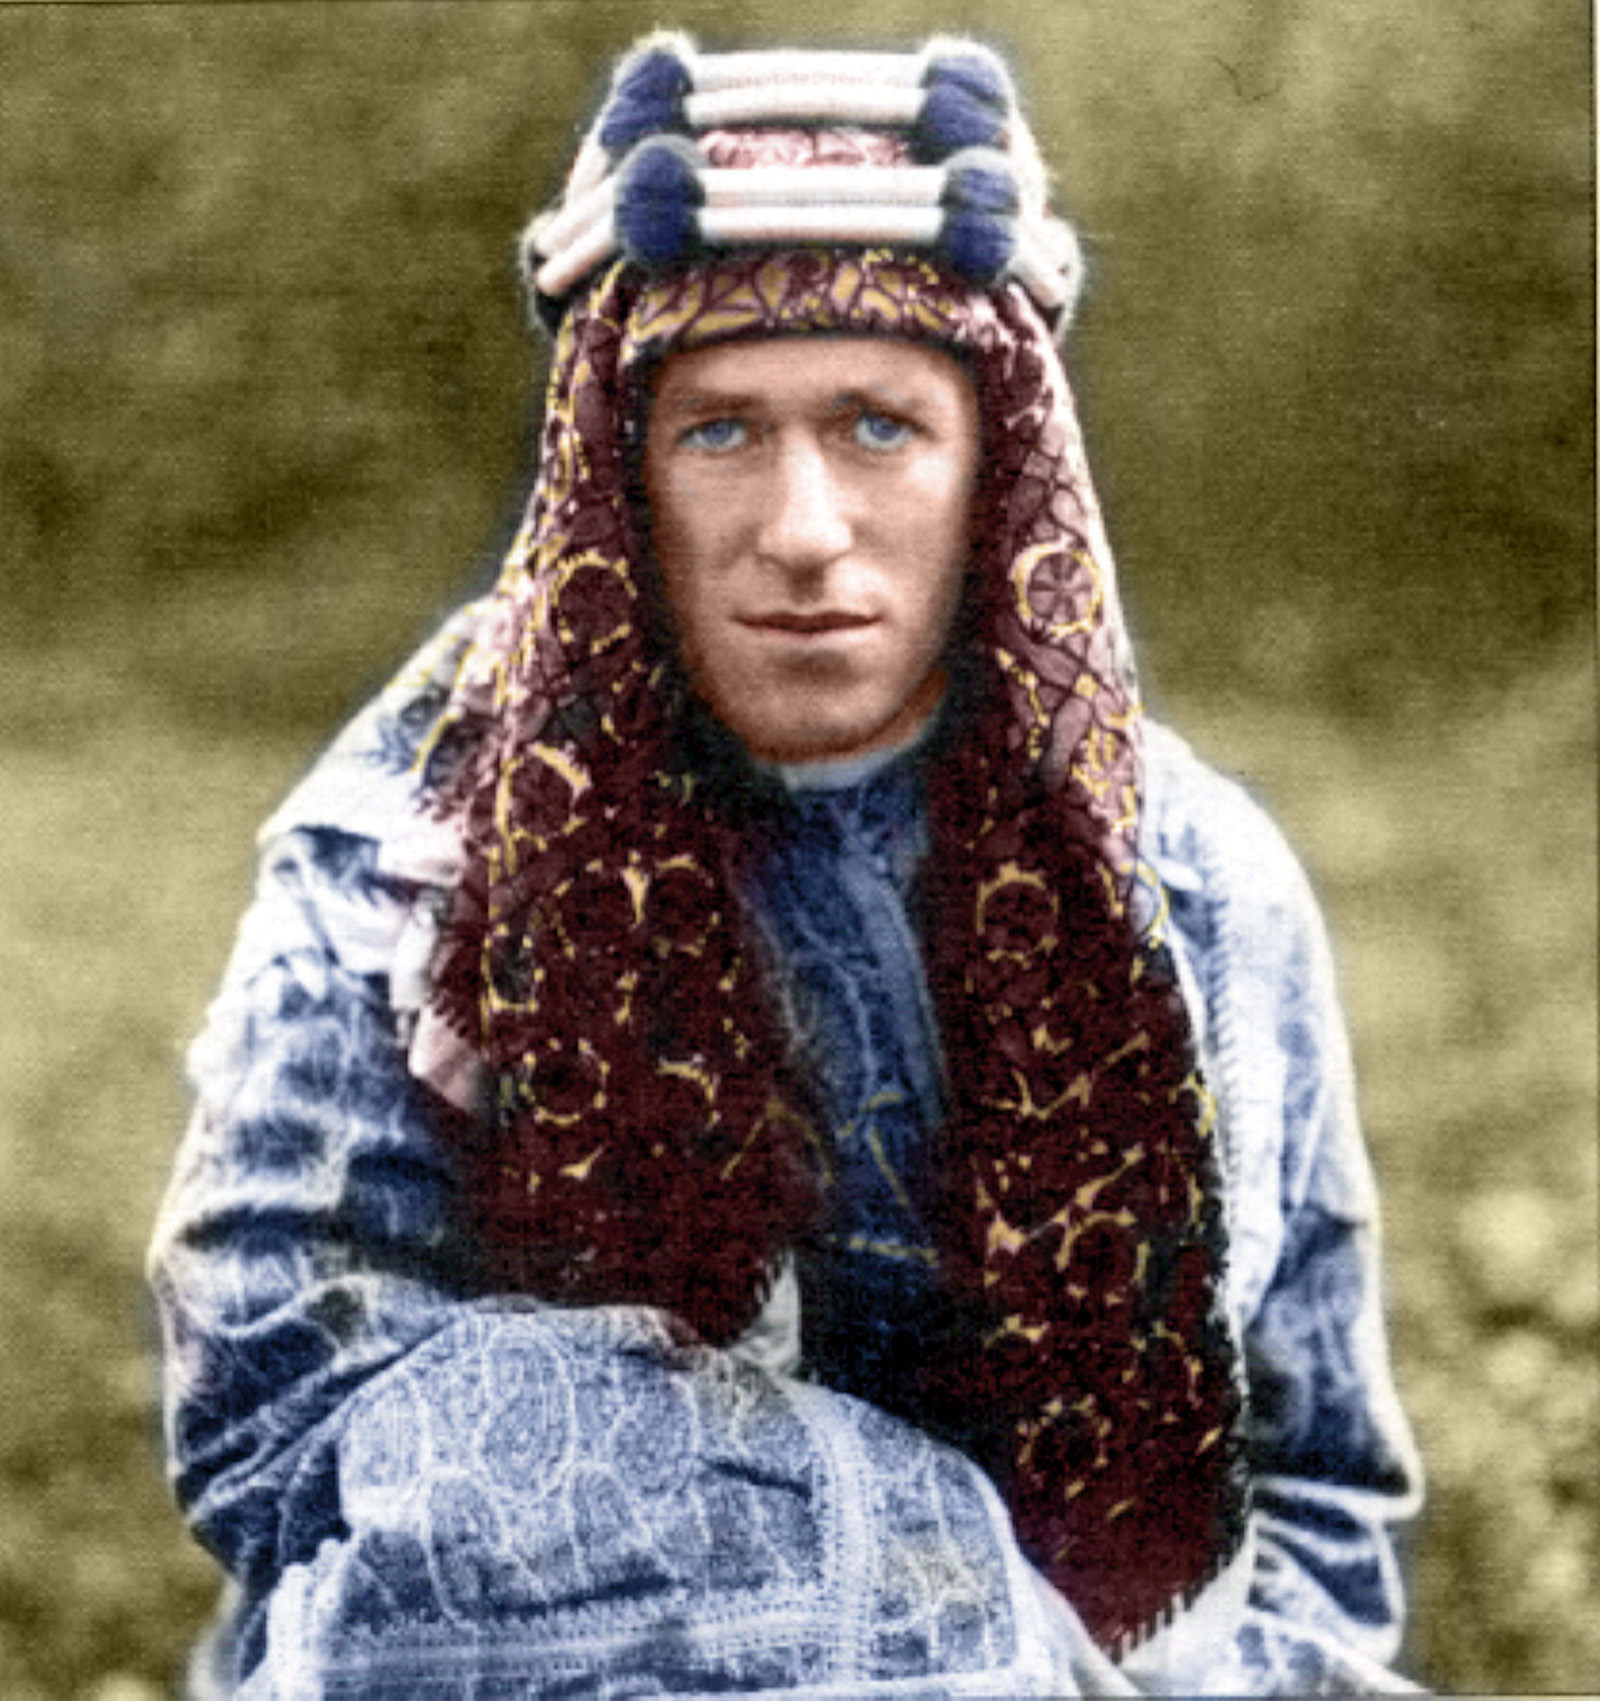 1001-te-lawrence-of-arabia.jpg